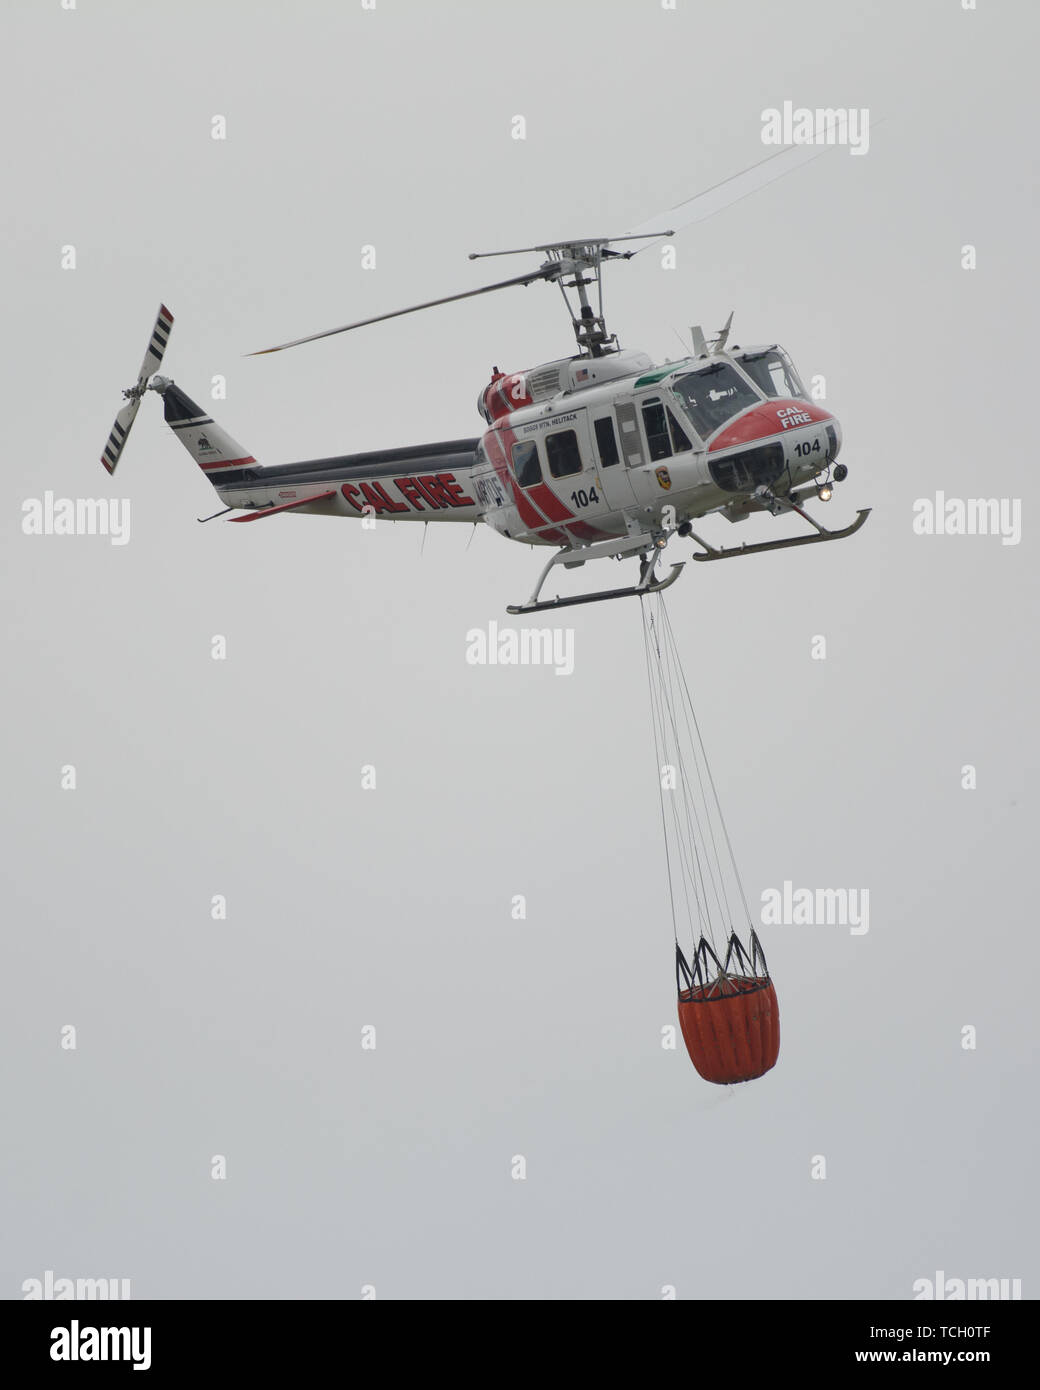 A Cal Fire helicopter flying around with water bucket in lake berryessa, california, usa - Stock Image